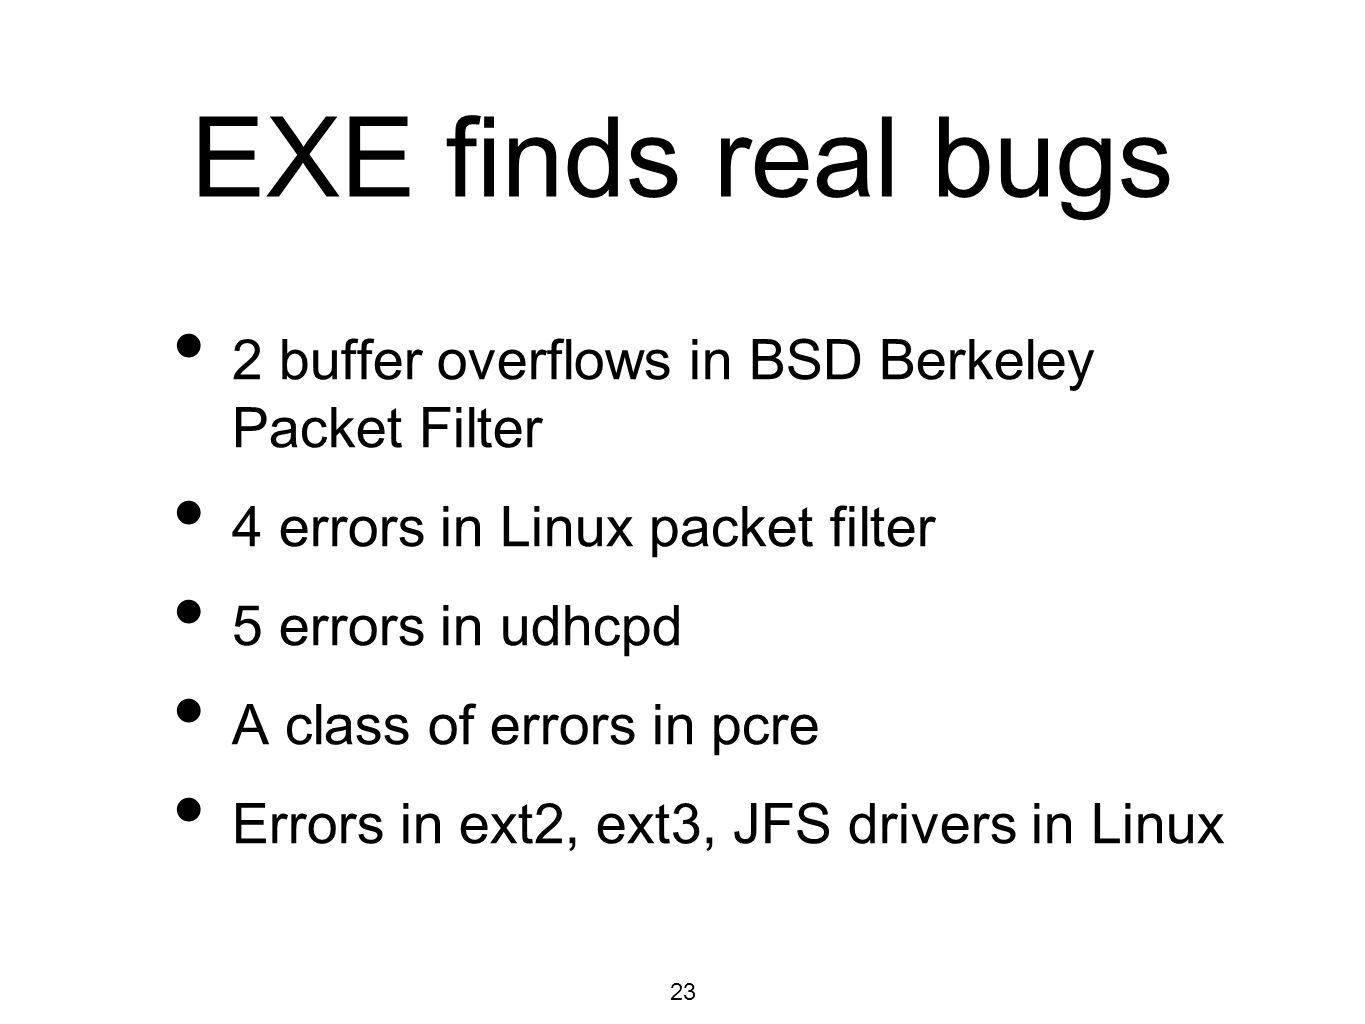 23 EXE finds real bugs 2 buffer overflows in BSD Berkeley Packet Filter 4 errors in Linux packet filter 5 errors in udhcpd A class of errors in pcre Errors in ext2, ext3, JFS drivers in Linux